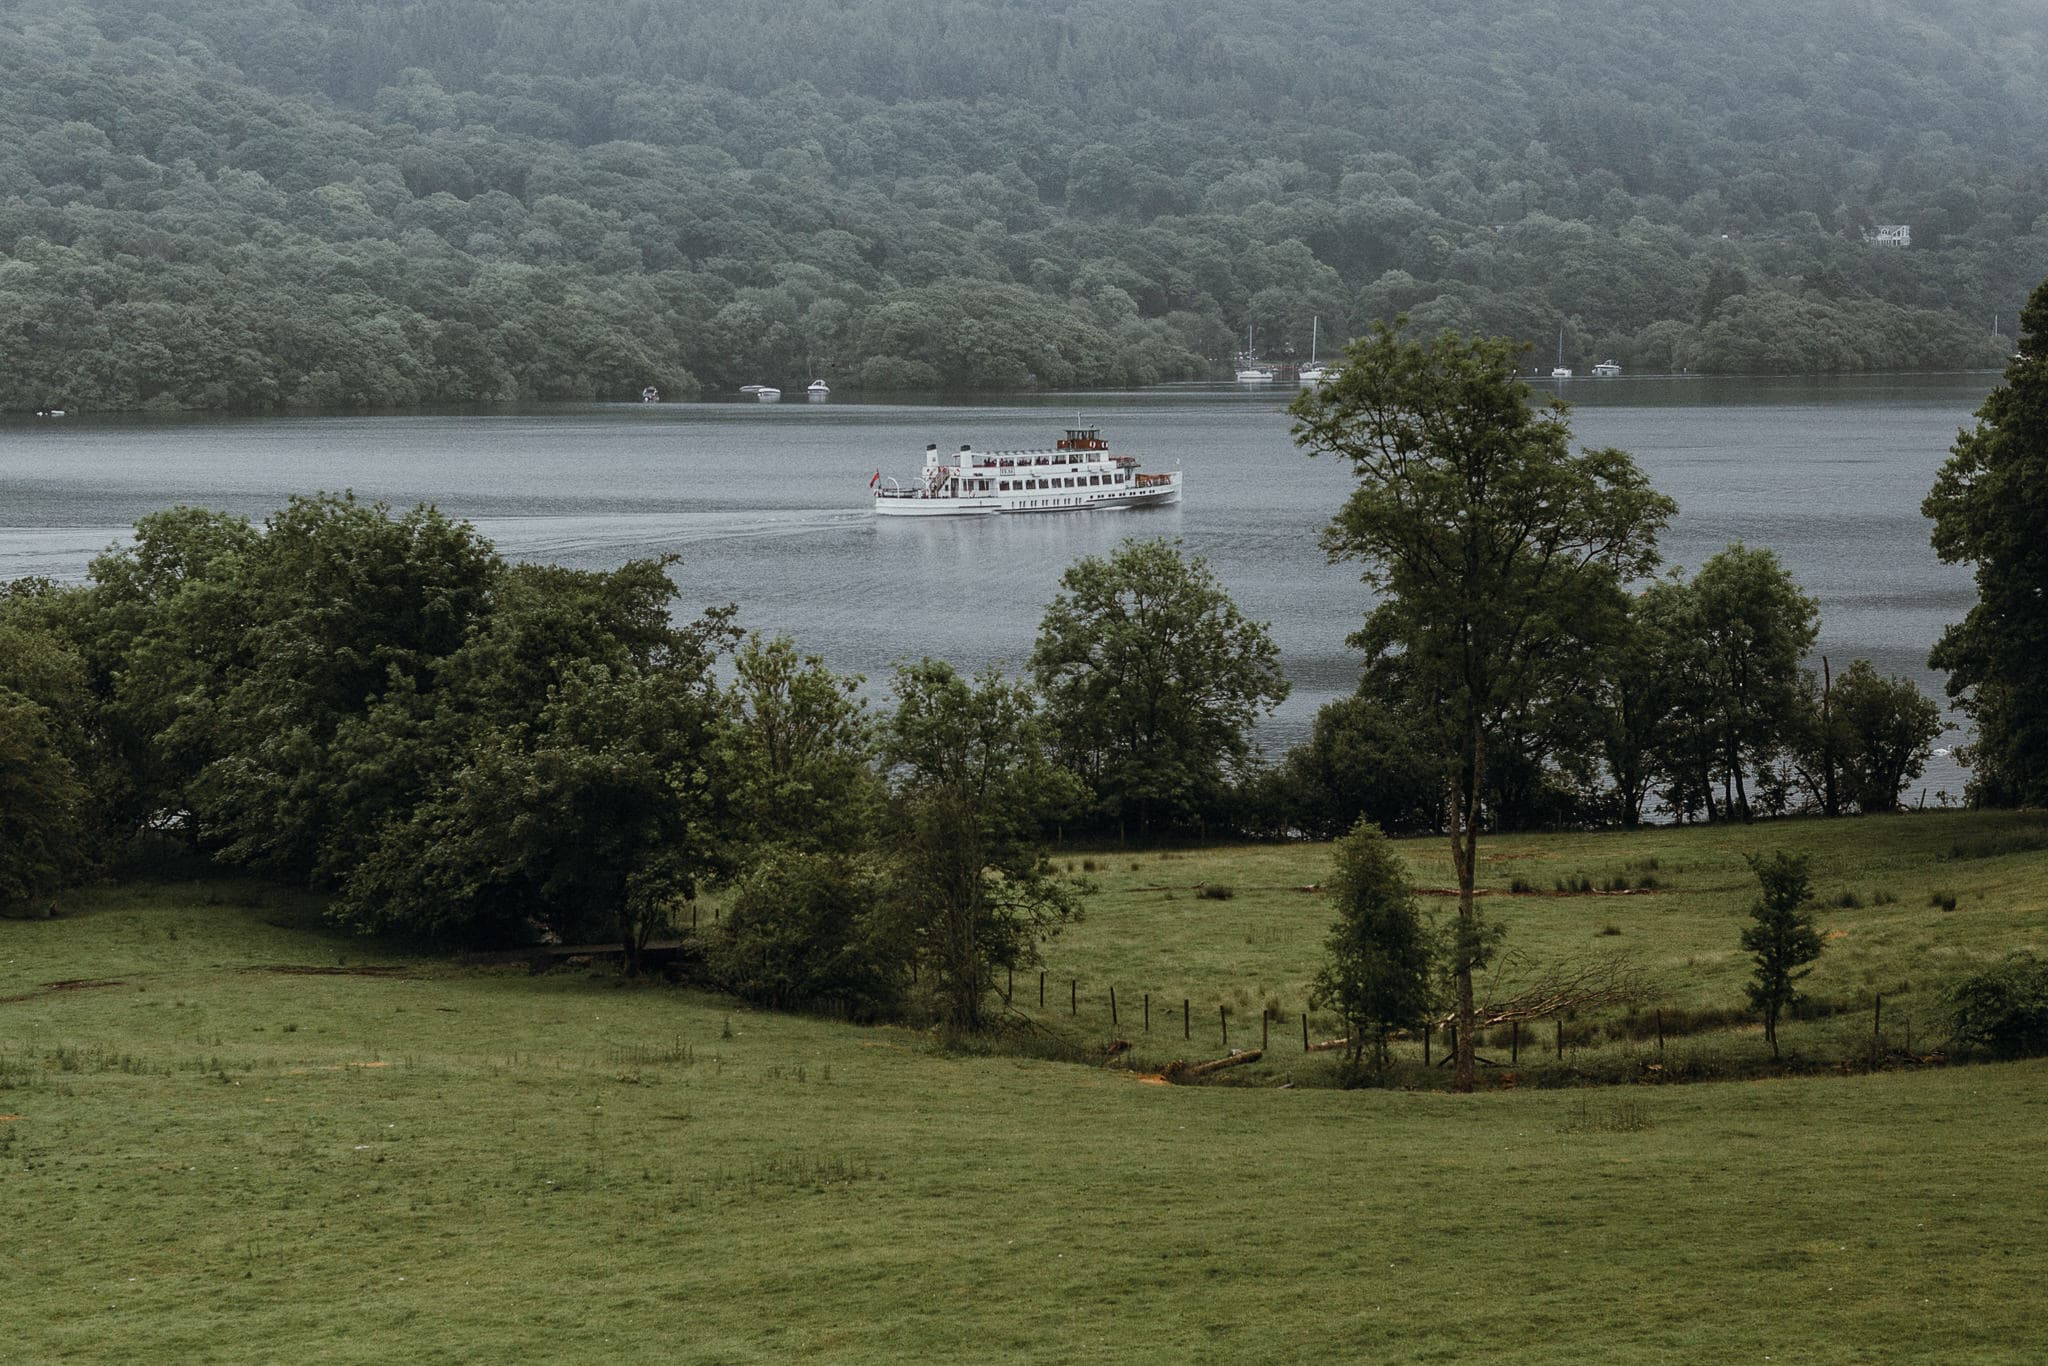 Ferry Boat on Lake Windermere